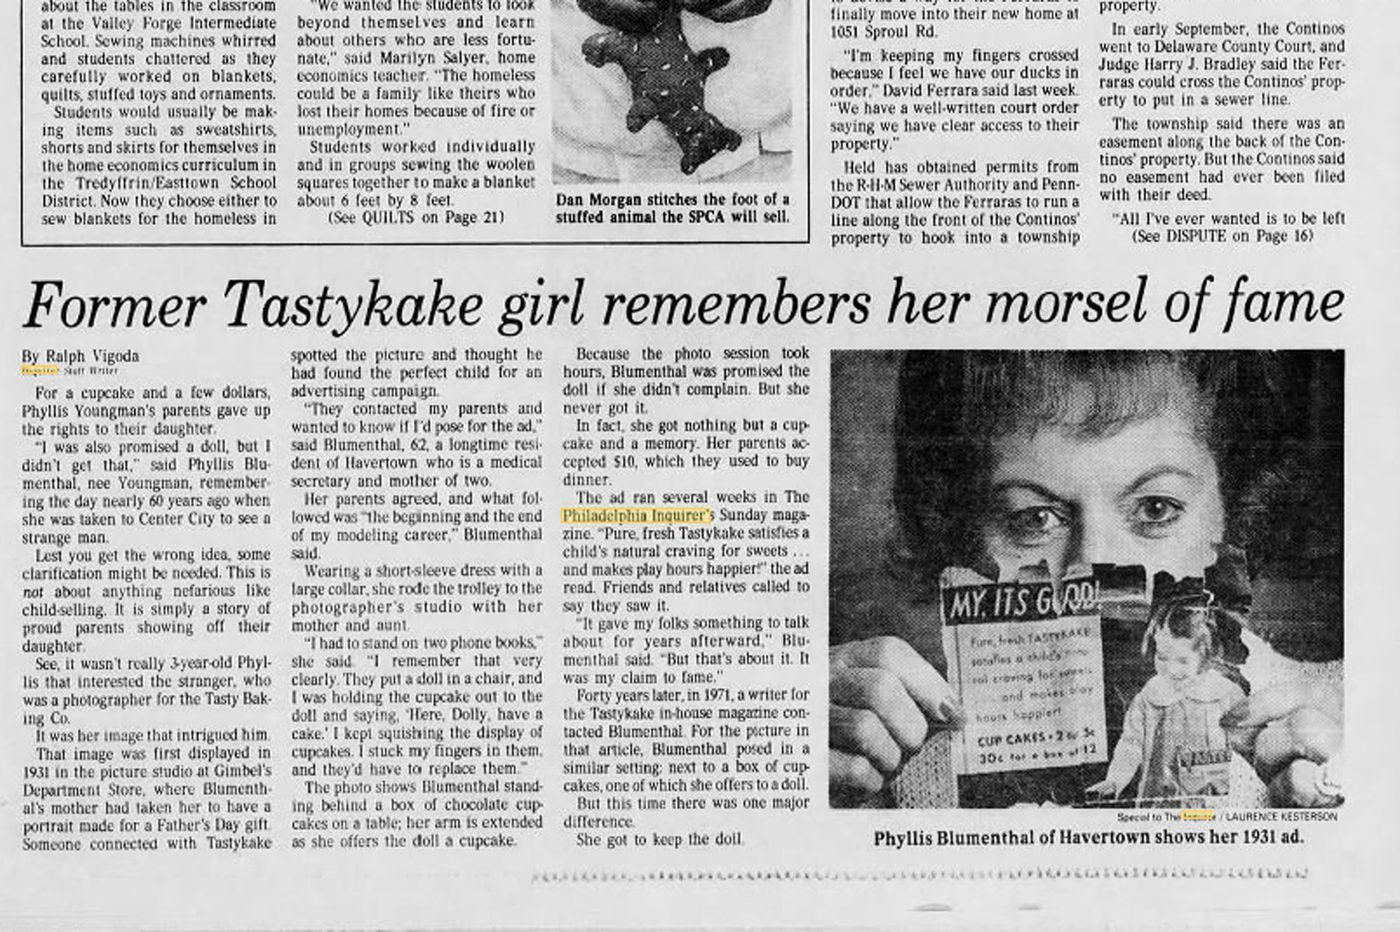 UpSide Classic: Tastykake promised the child model a doll for posing for photos. She didn't get it.